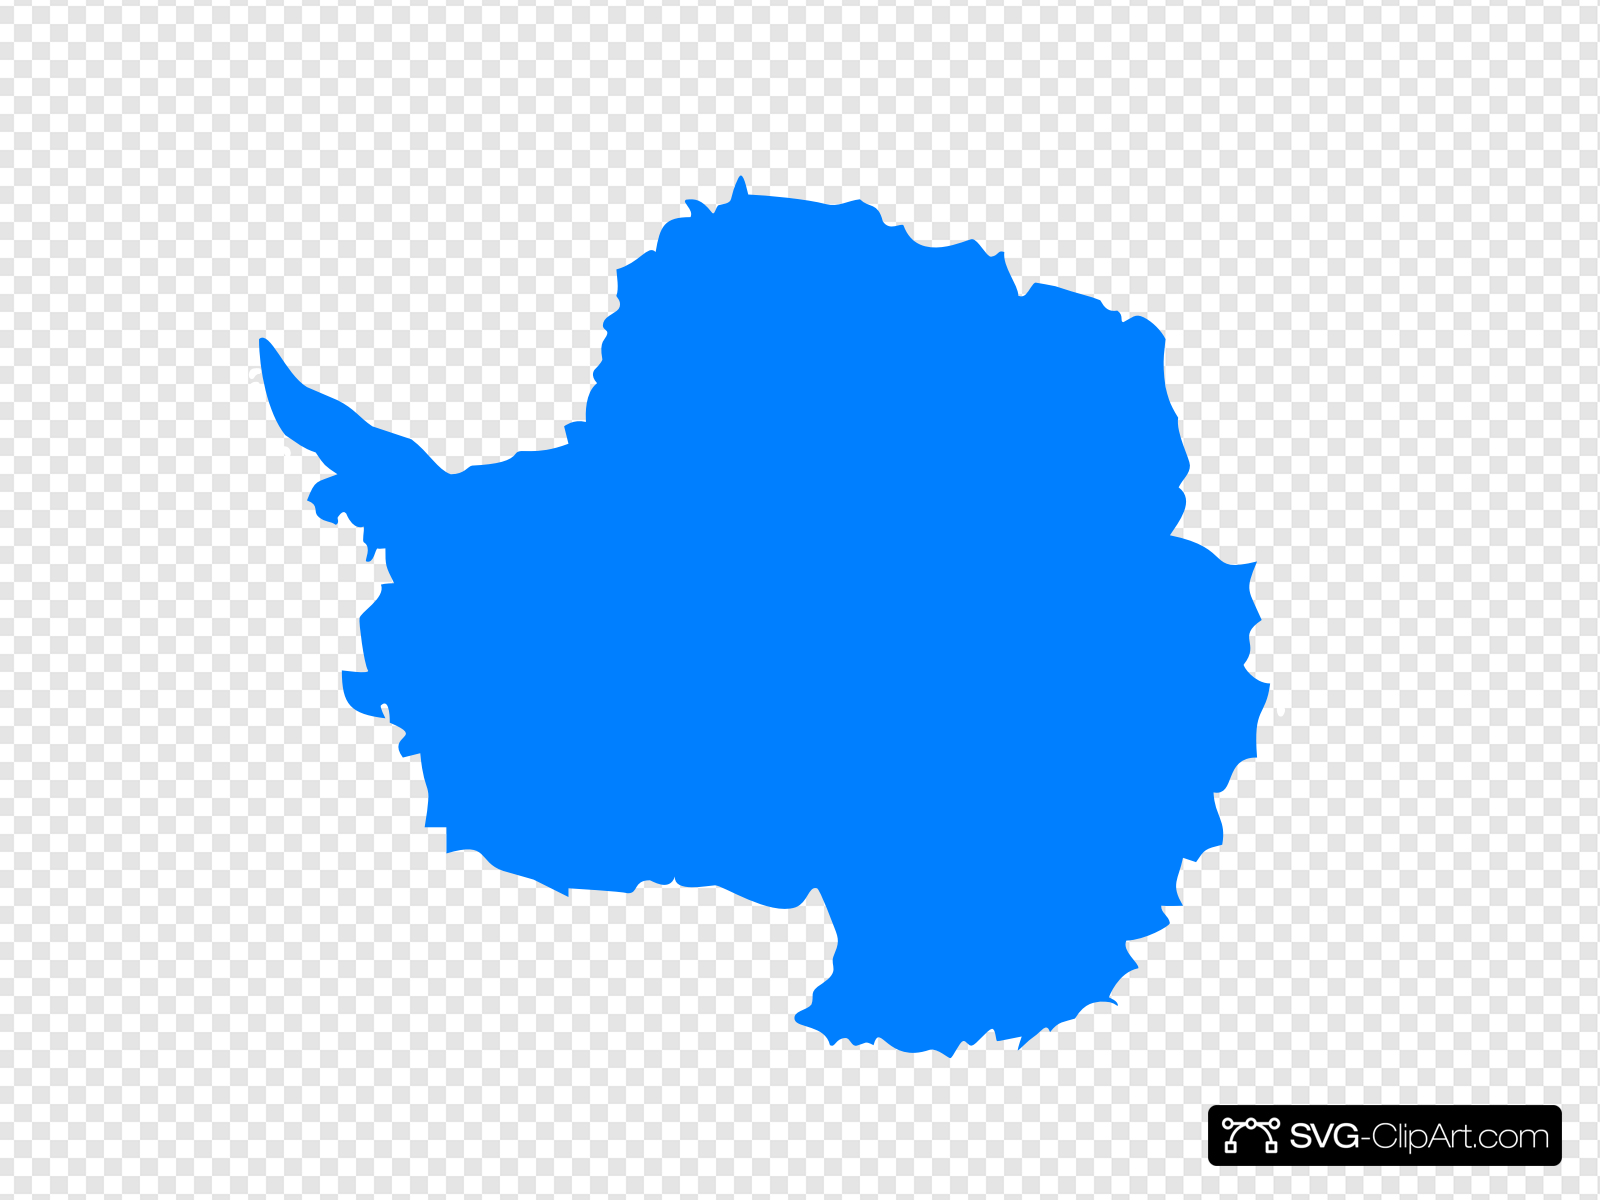 Antarctica Clip art, Icon and SVG.